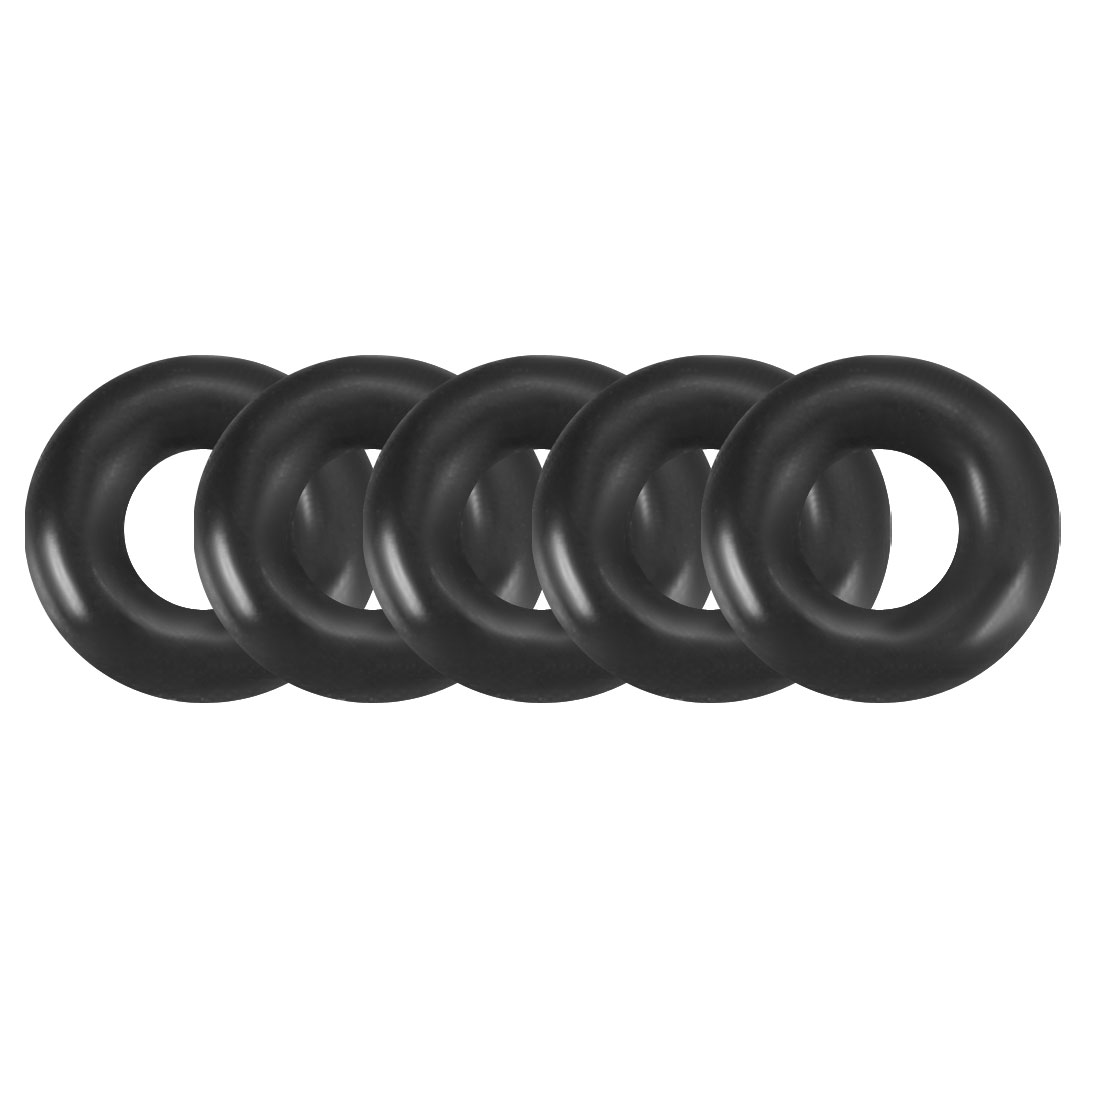 100Pcs 4.2x1.2mm Nitrile Rubber O-rings Heat Resistant Sealing Ring Grommets Black